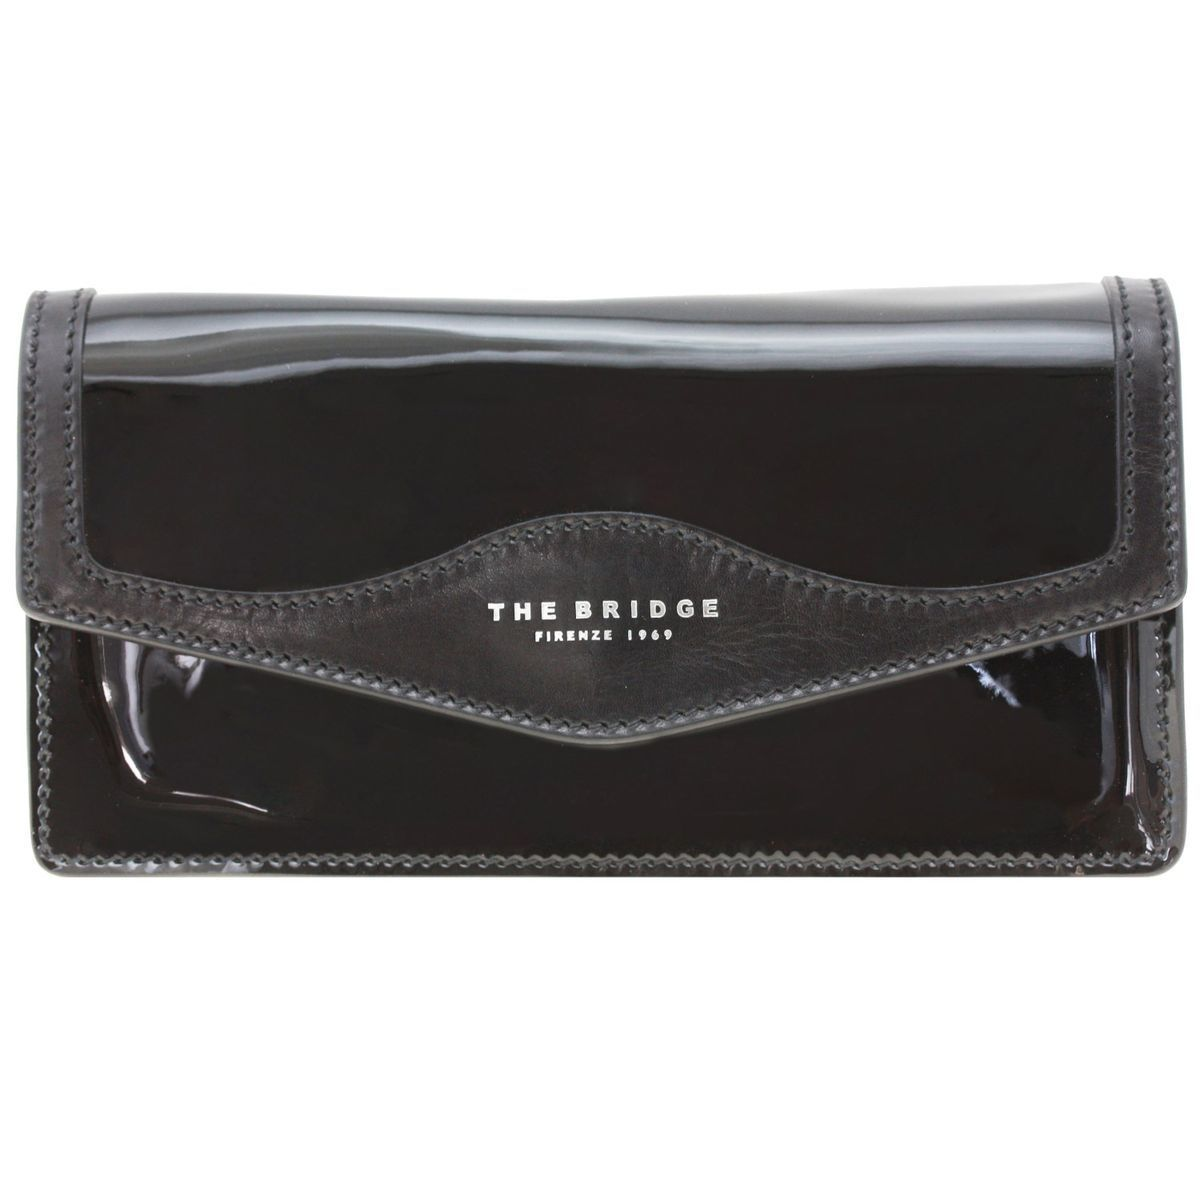 The Bridge Glitter Clutch Tasche 26 cm Leder, nero